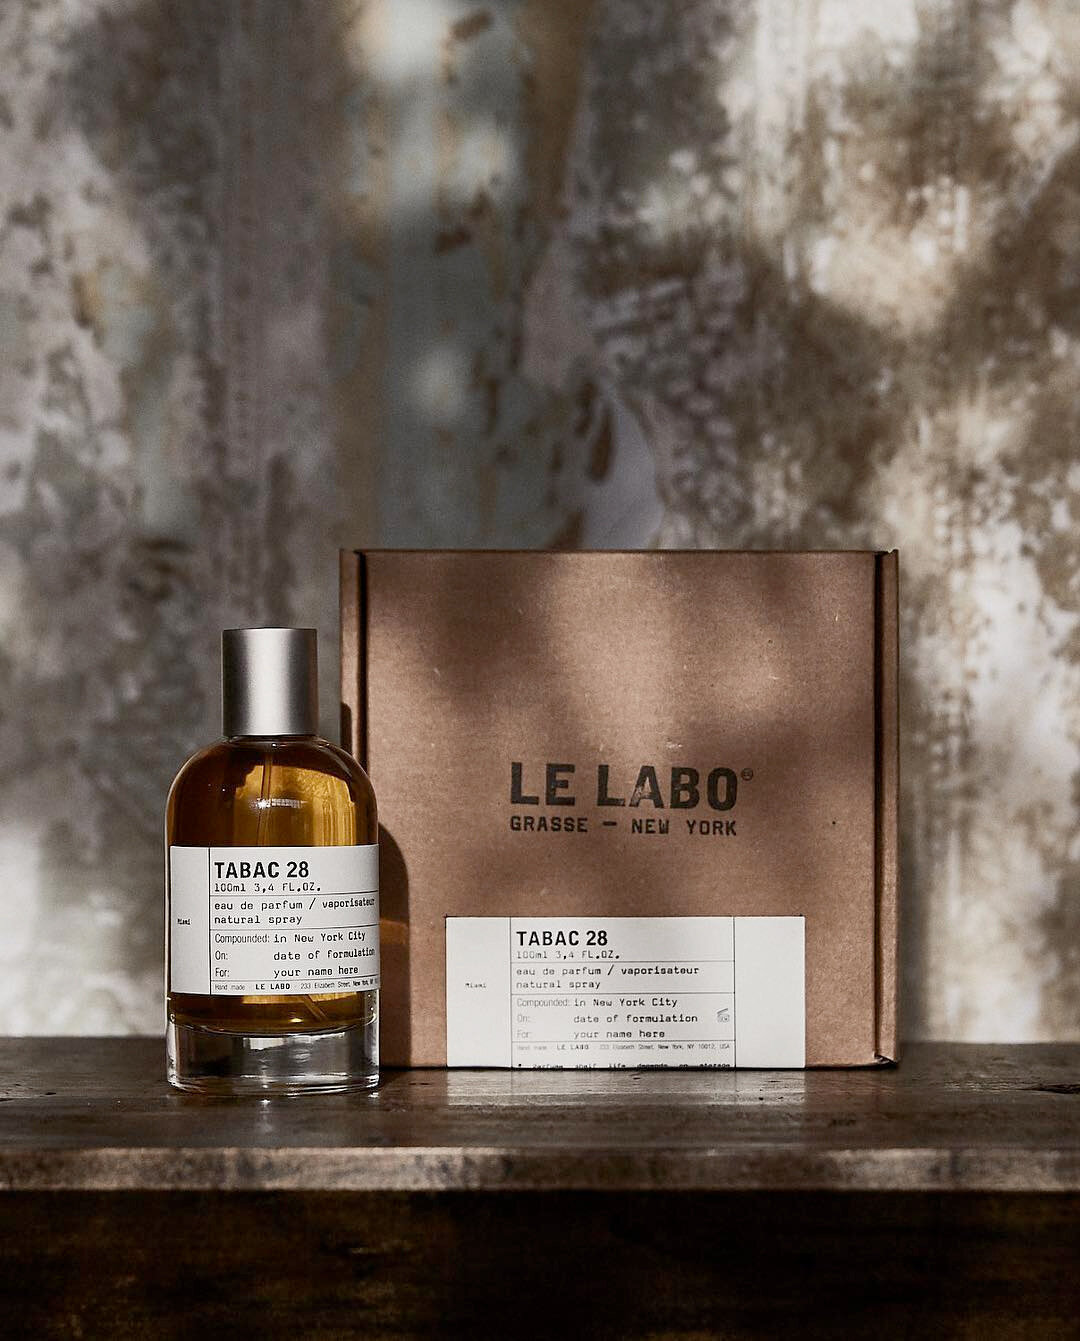 """TABAC 28, Miami   City Exclusive   Le Labo_   """"Deeply aromatic tobacco absolute (picture a Cuban Havana distilled) combined with opulent oud and a striking cedarwood blend creating a smooth,smoldering, feel. Guaiac wood and rum give the fragrance an intoxicating warmth rounded with green cardamom. The whole thing is alive, vibrant, sensual, opulent, decadent even! And it brings to Wynwood another colorful graffiti, but this one for your nostrils only."""""""